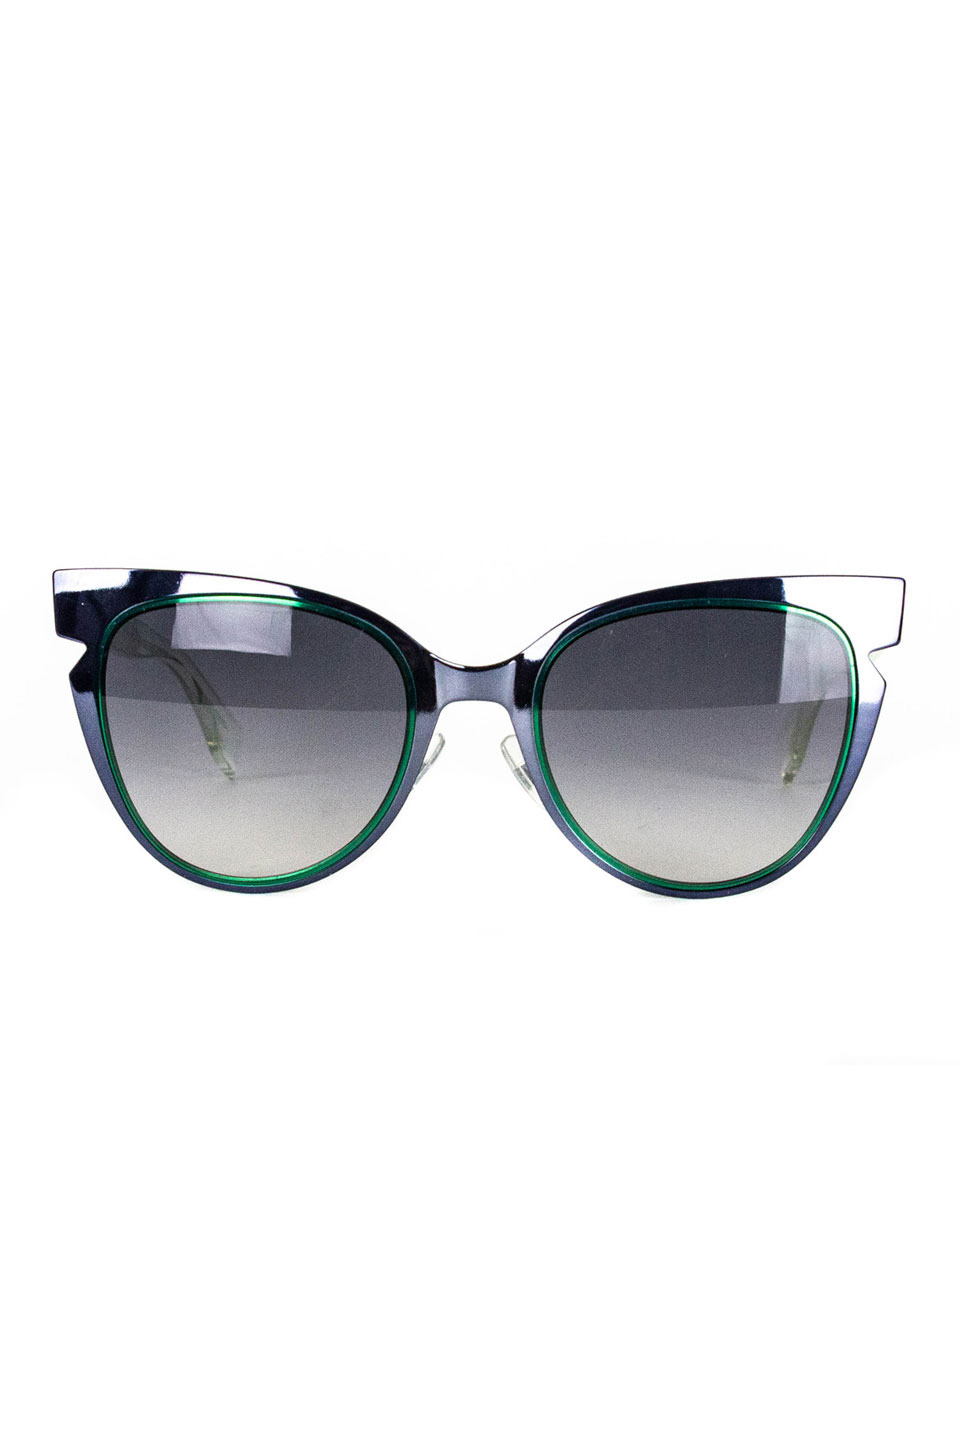 Azalea Sunglasses in Navy